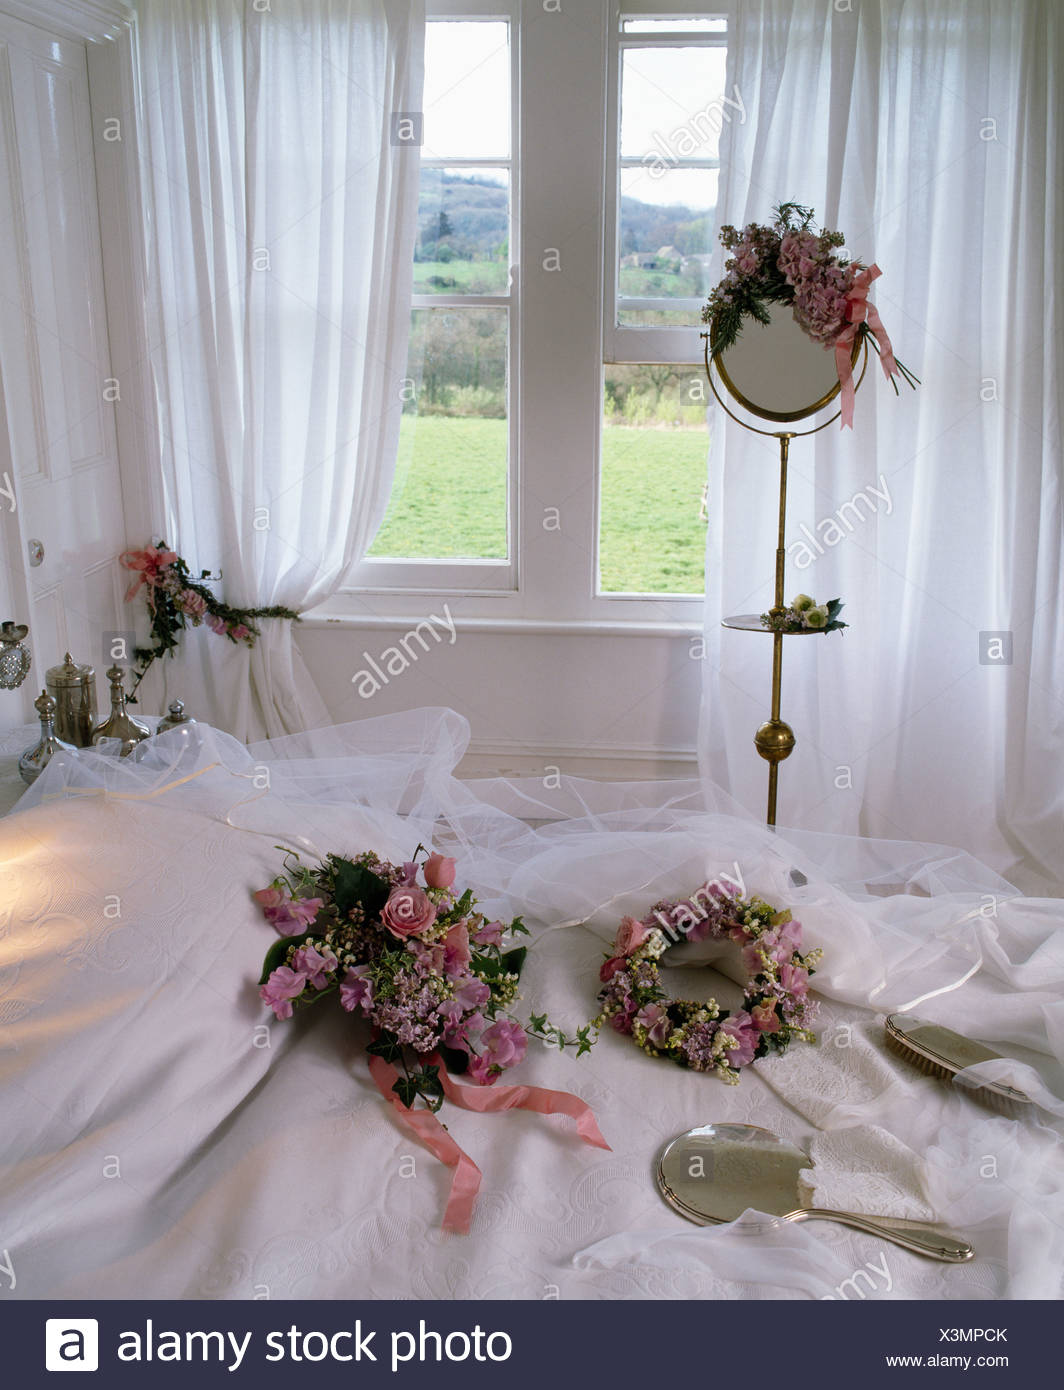 floral wedding head dresses and veil on white bed in front of window with white curtains in. Black Bedroom Furniture Sets. Home Design Ideas